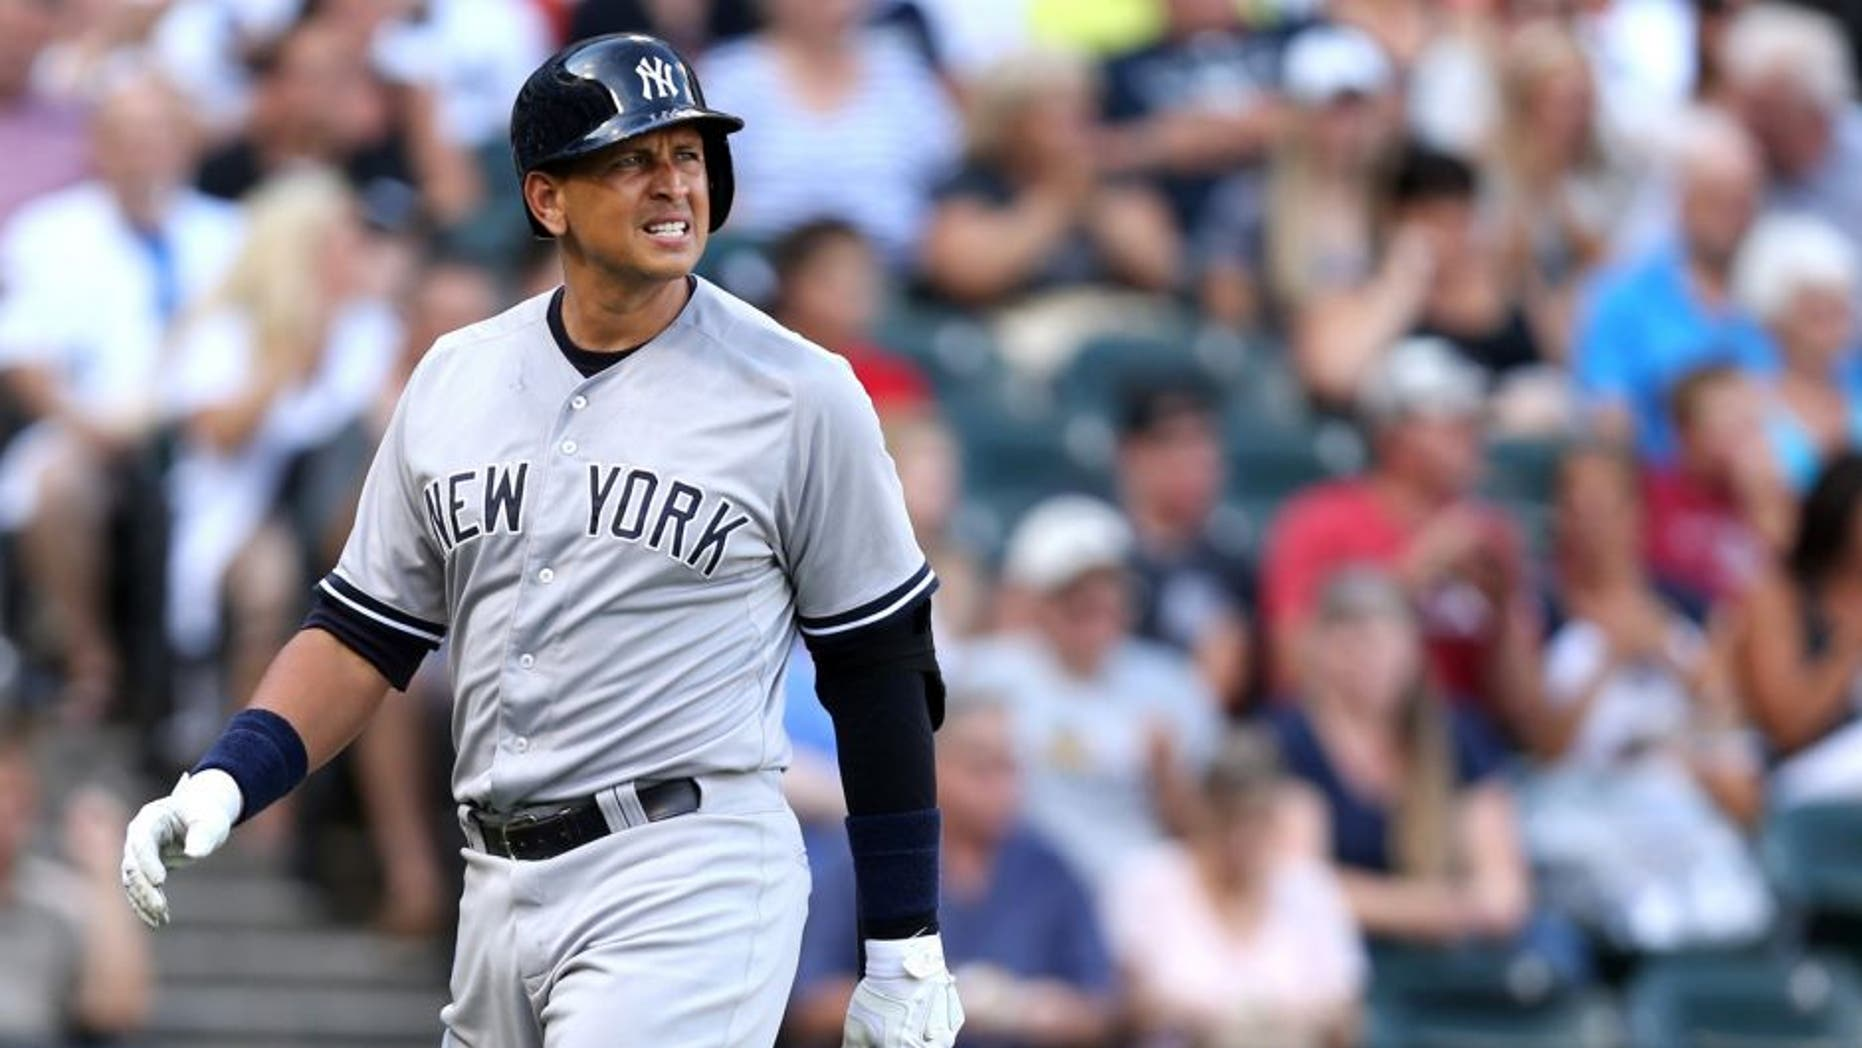 New York Yankees designated hitter Alex Rodriguez walks back to the dugout after striking out to end the first inning against the Chicago White Sox at U.S. Cellular Field in Chicago on Saturday, Aug. 1, 2015. (Chris Sweda/Chicago Tribune/TNS via Getty Images)